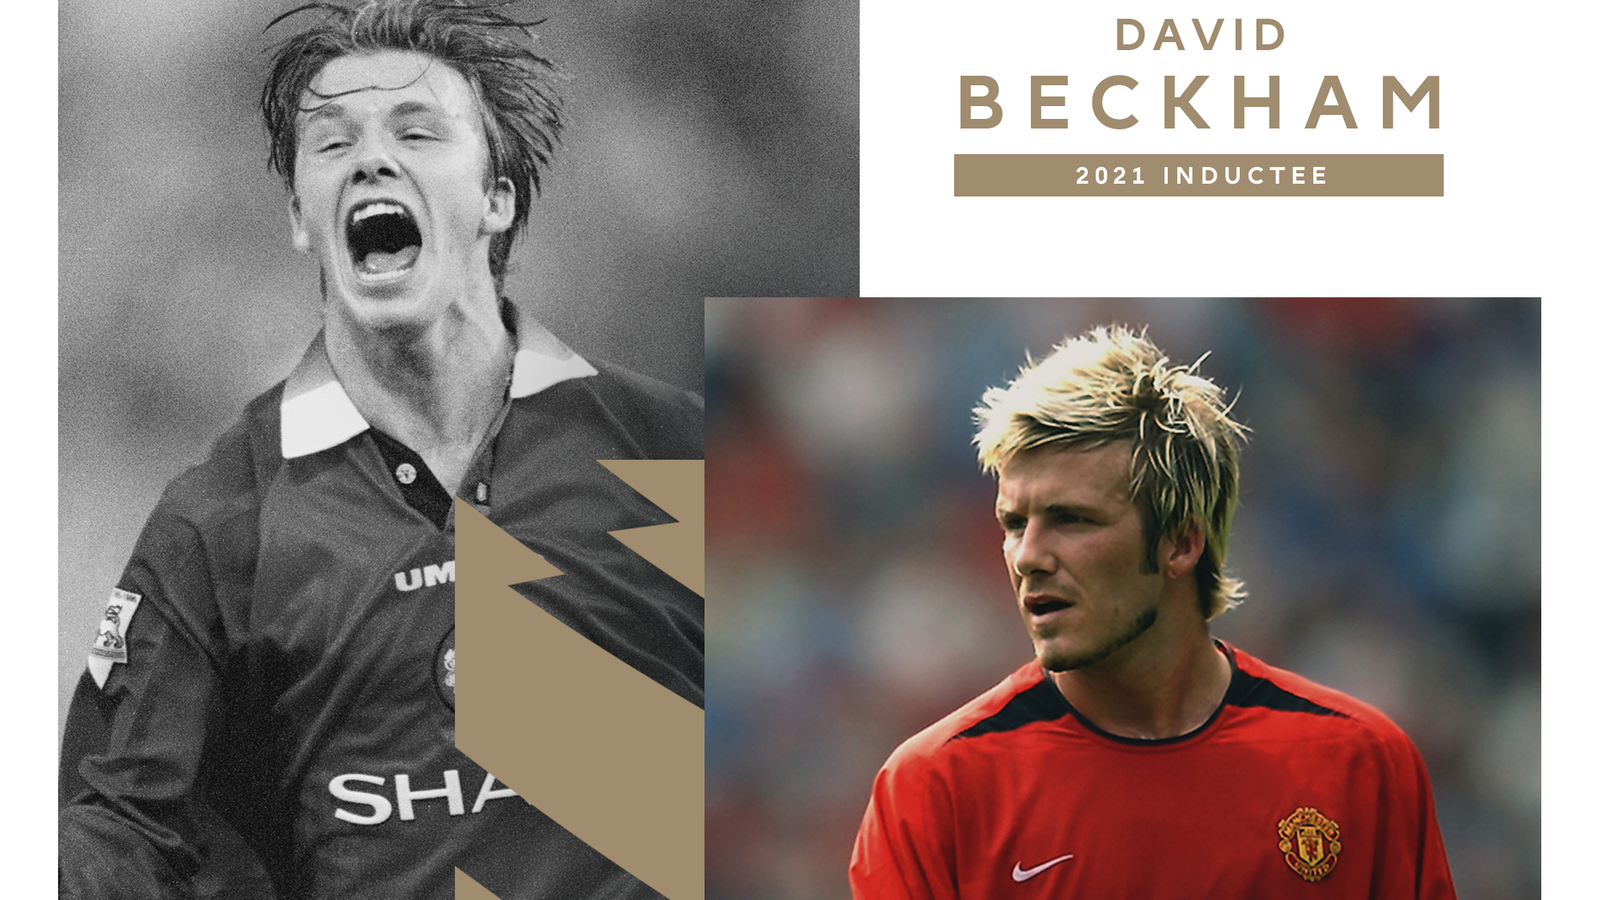 Steven Gerrard and David Beckham inducted into Premier League Hall of Fame